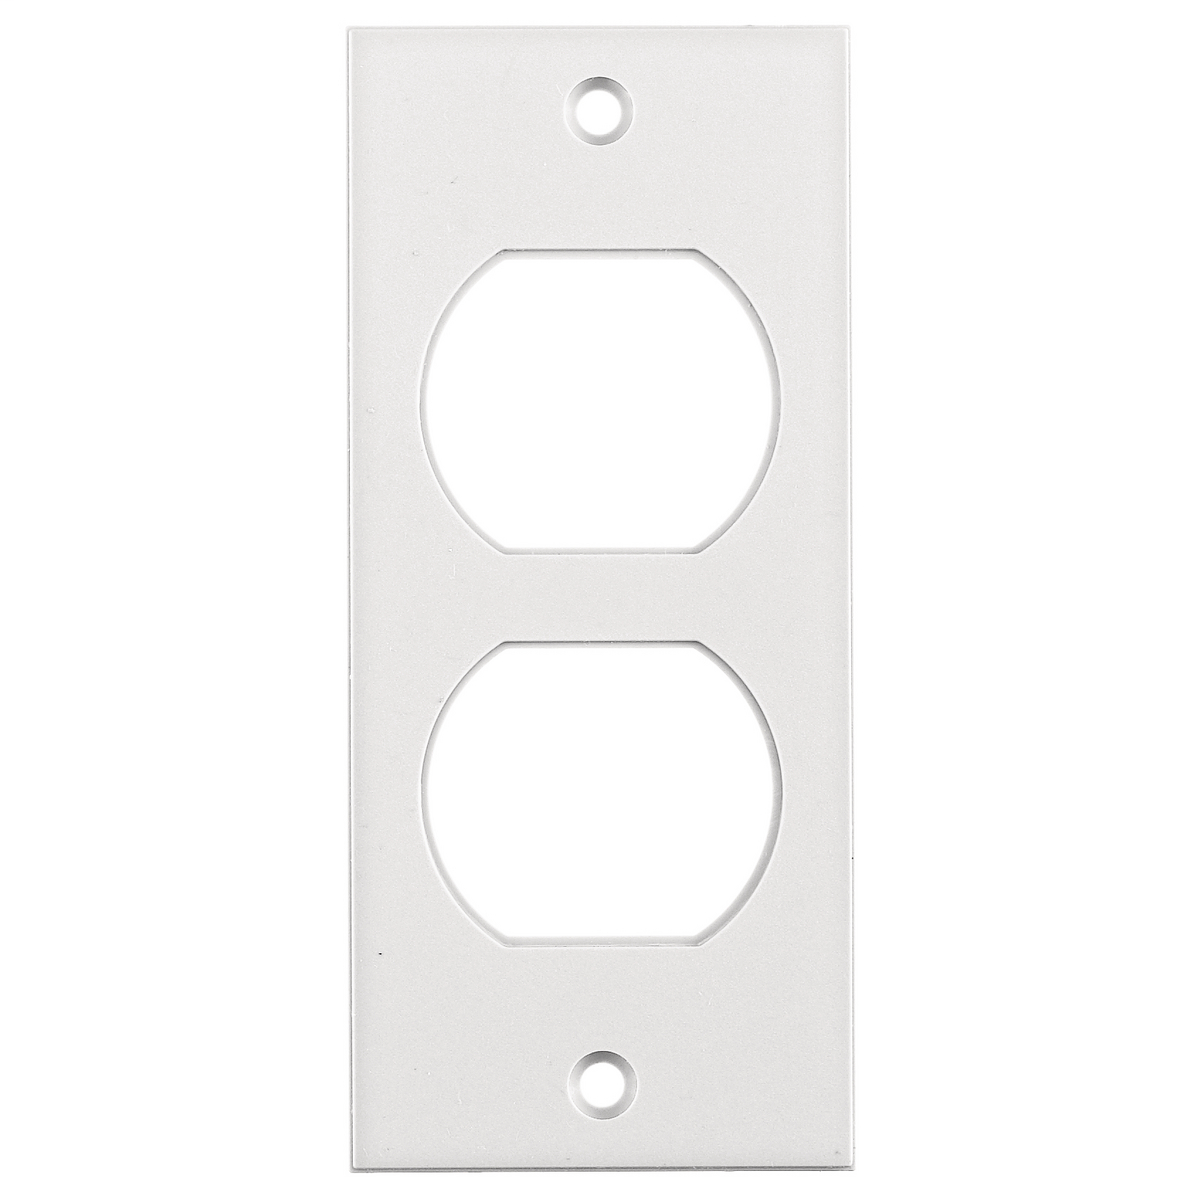 Hubbell Wiring Device Kellems, Floor and Wall Boxes, MULTI-CONNECTSystem, Face Plate, Screw Mount, Duplex, White